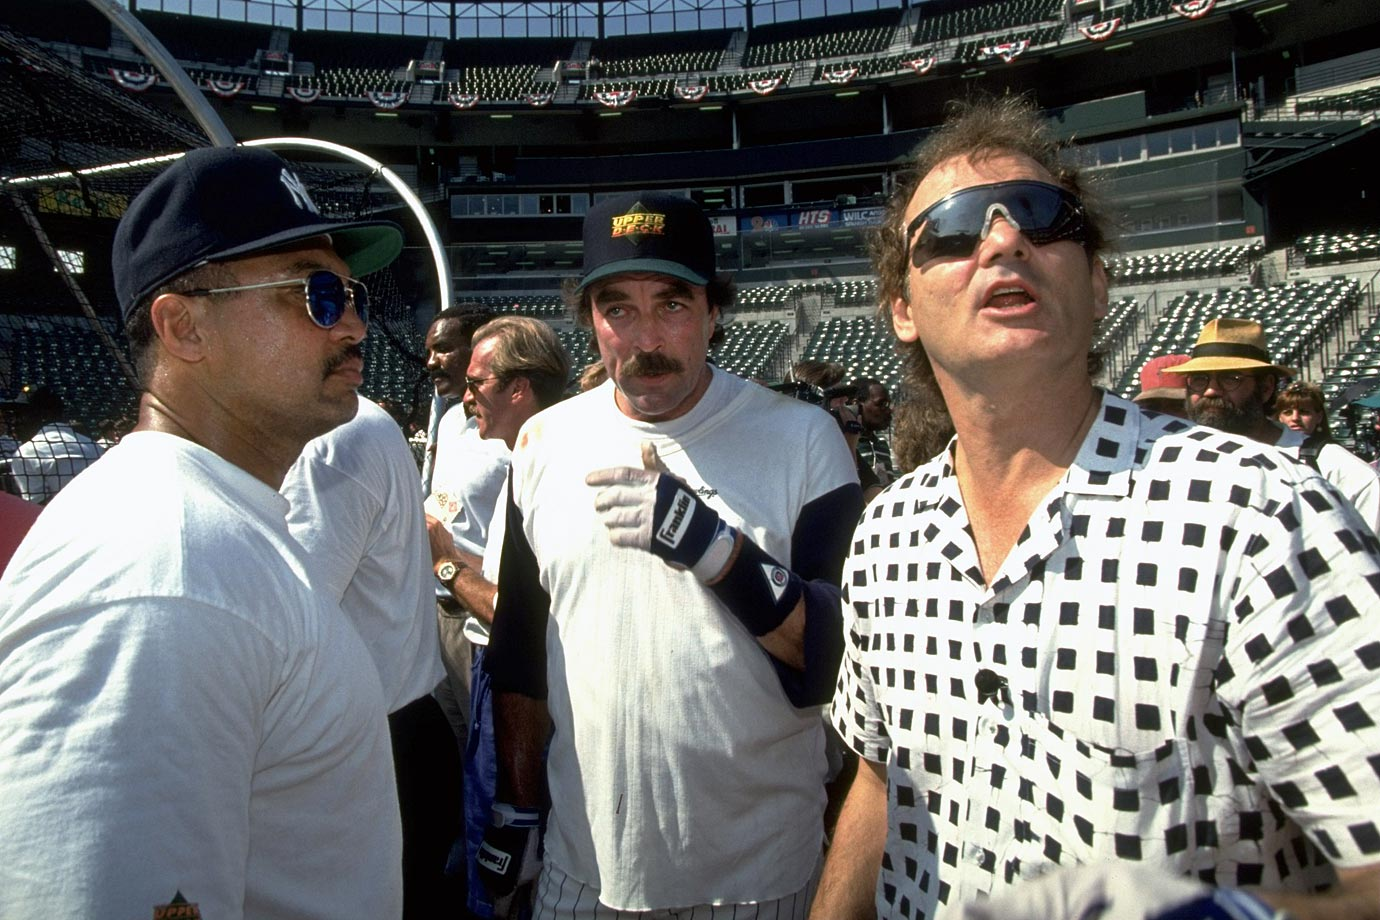 Reggie Jackson, Tom Selleck and Bill Murray look on during the Old Timers Game on July 13, 1993 at Oriole Park at Camden Yards in Baltimore.